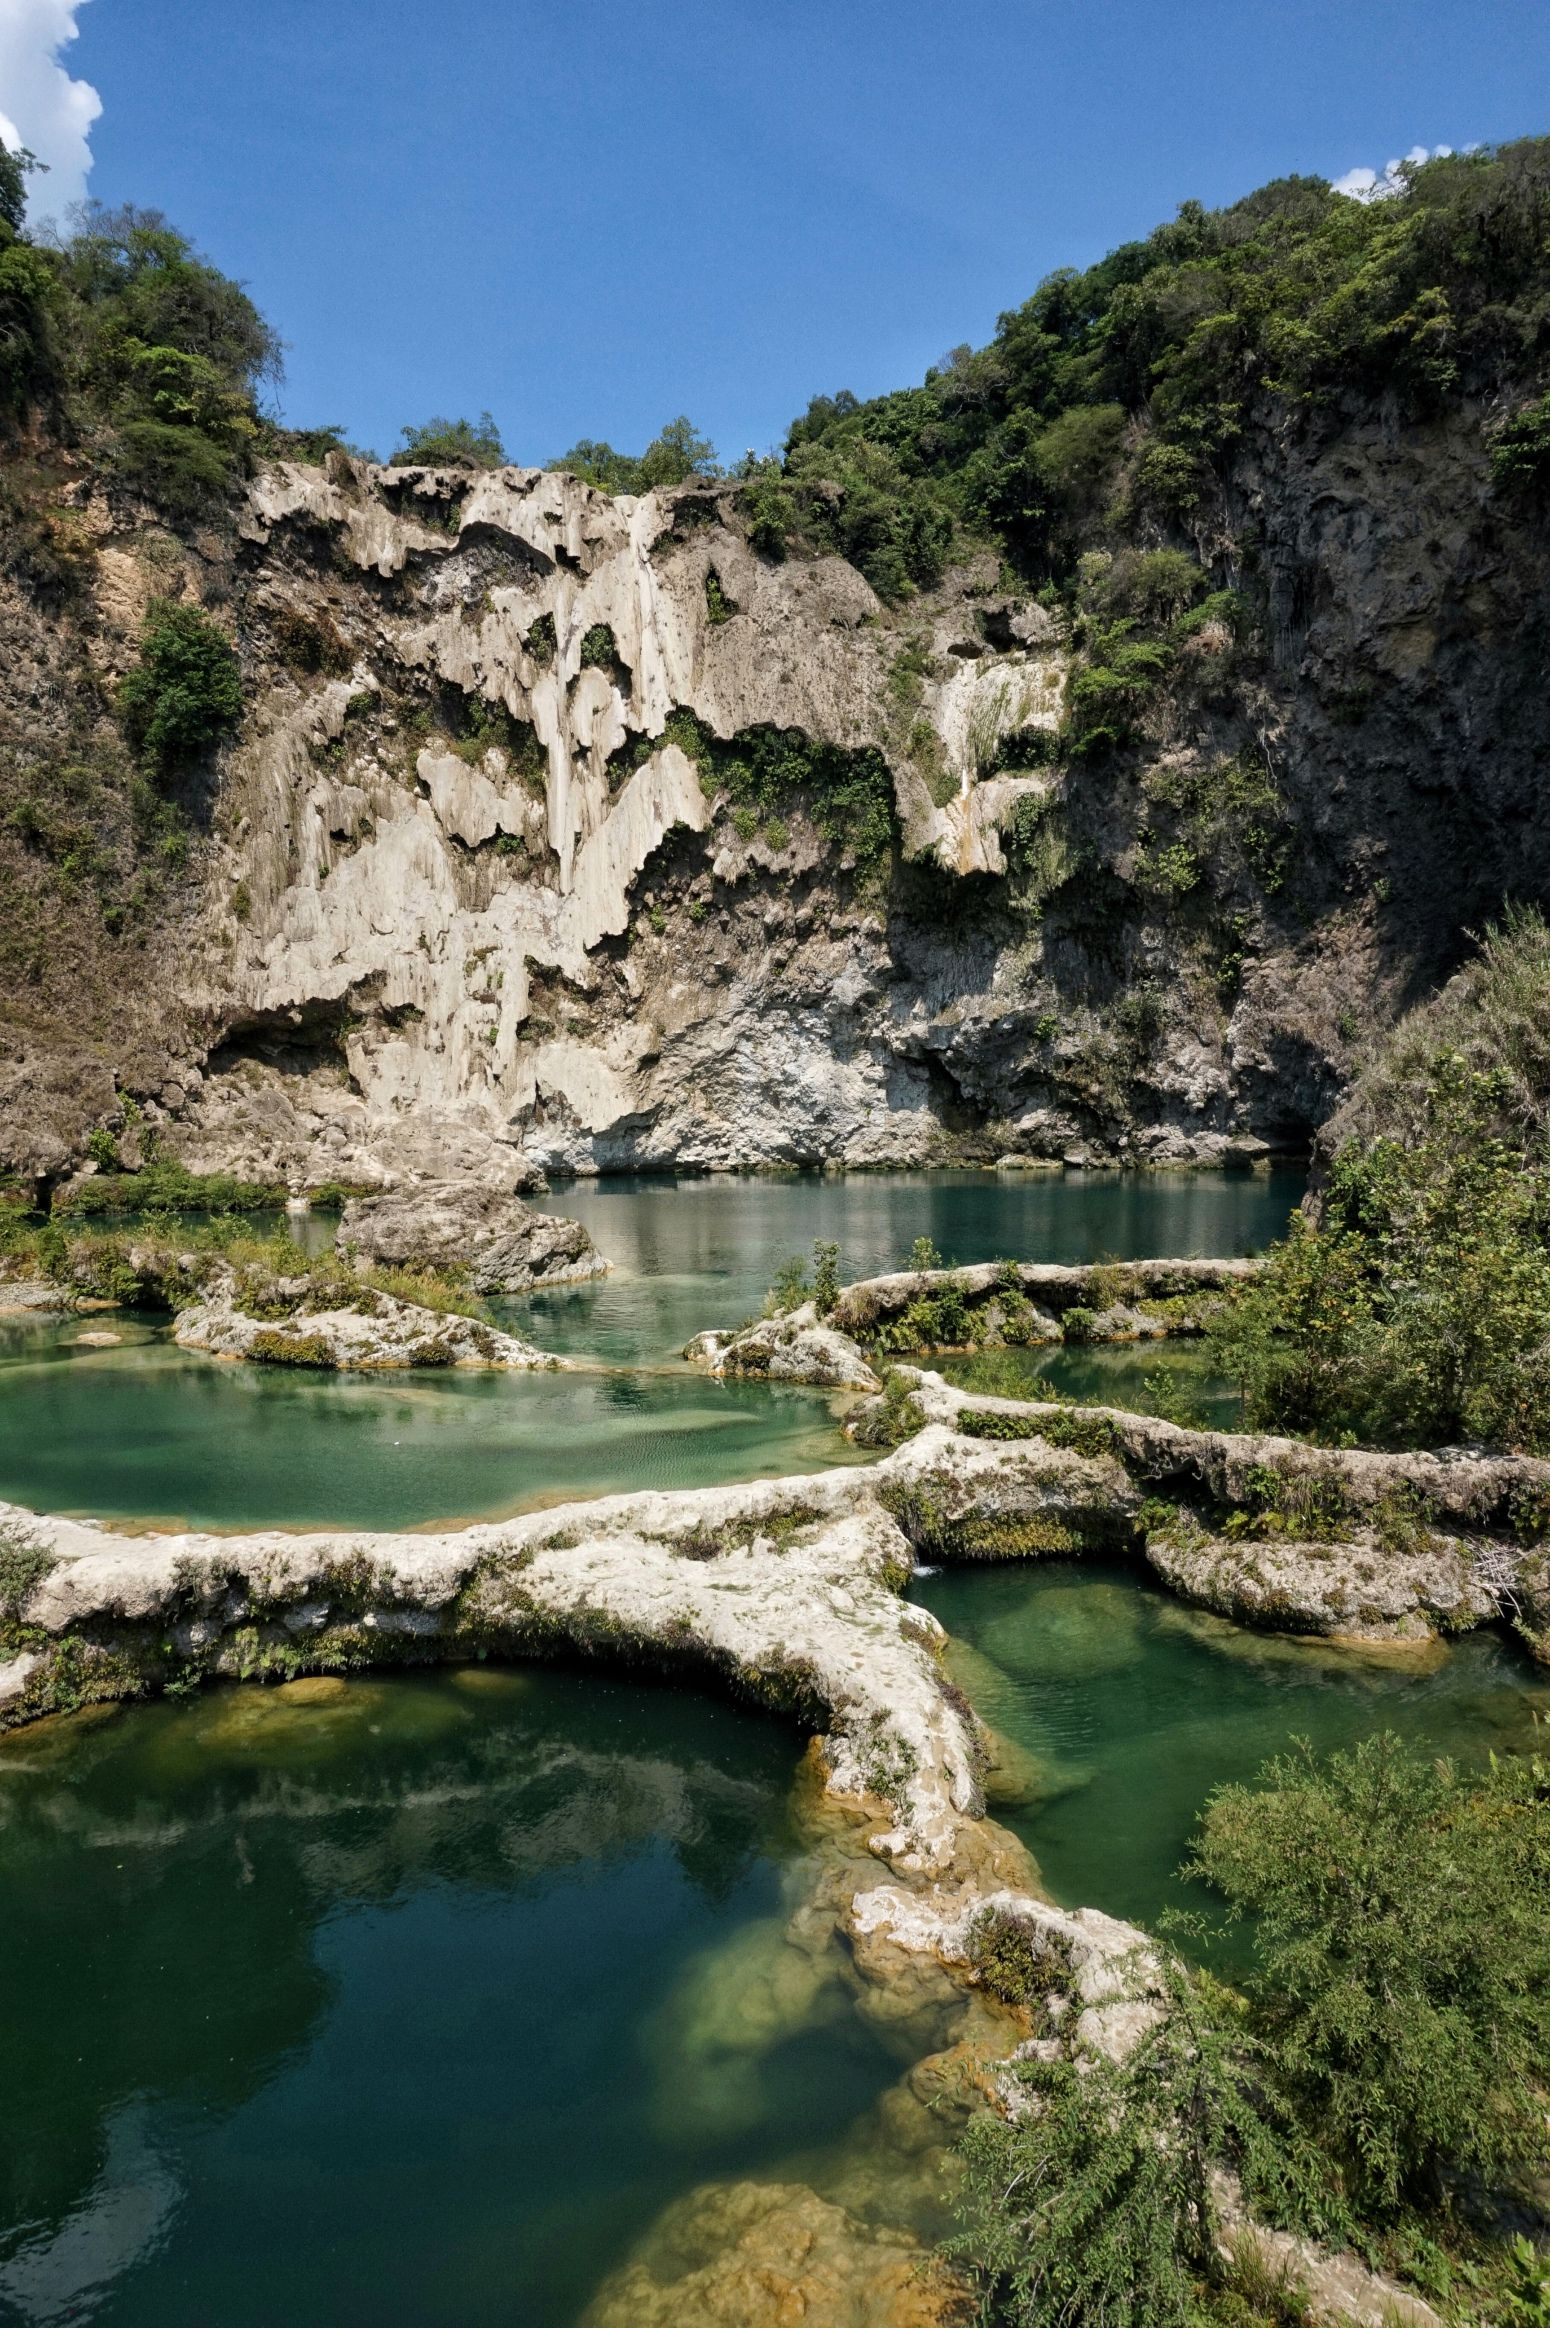 14 Reasons Why Huasteca Potosina Should Be On Your Central